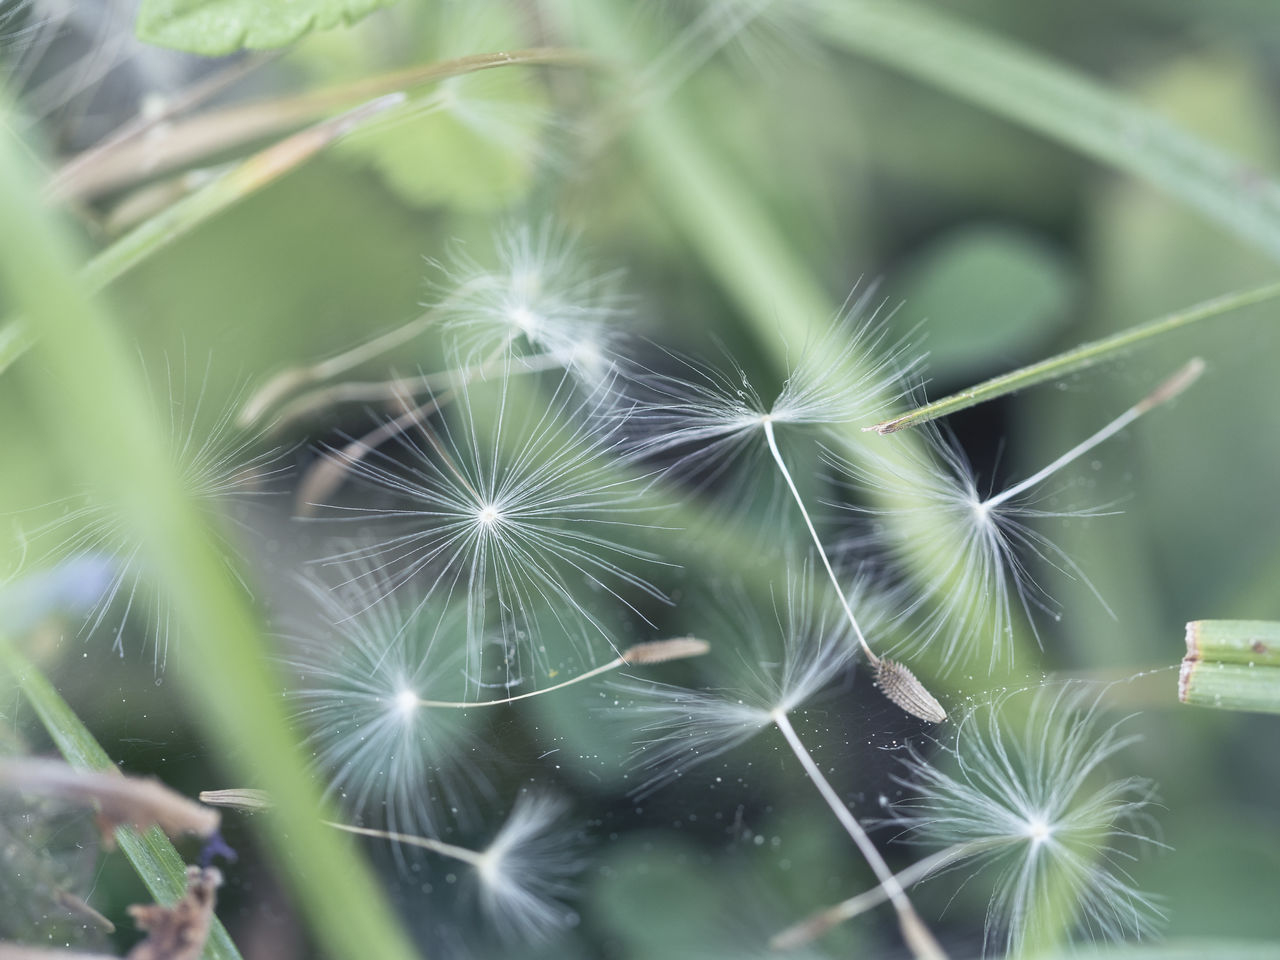 Beauty In Nature Close-up Dandelion Seeds Day EyeEm Gallery Freshness Green Color Growth Nature Nature Photography Nature_collection Naturelovers No People Outdoors Plant Seeds Seeds Flower